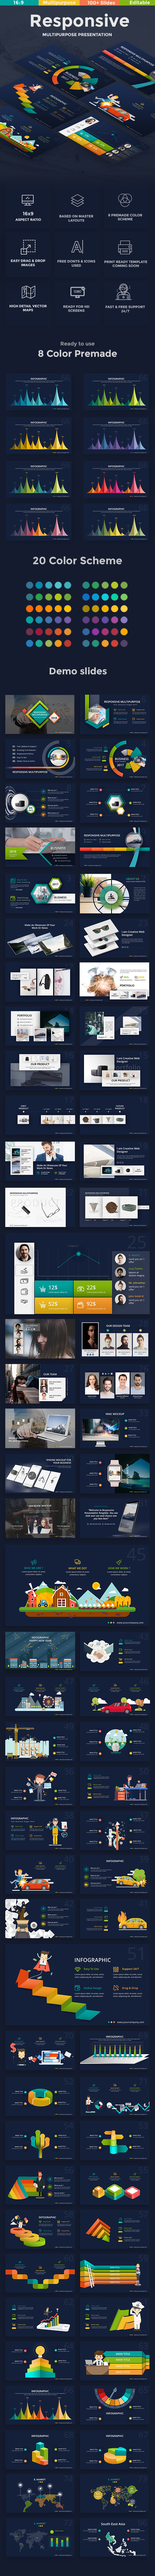 GraphicRiver Responsive Multipurpose Powerpoint Template 20936598